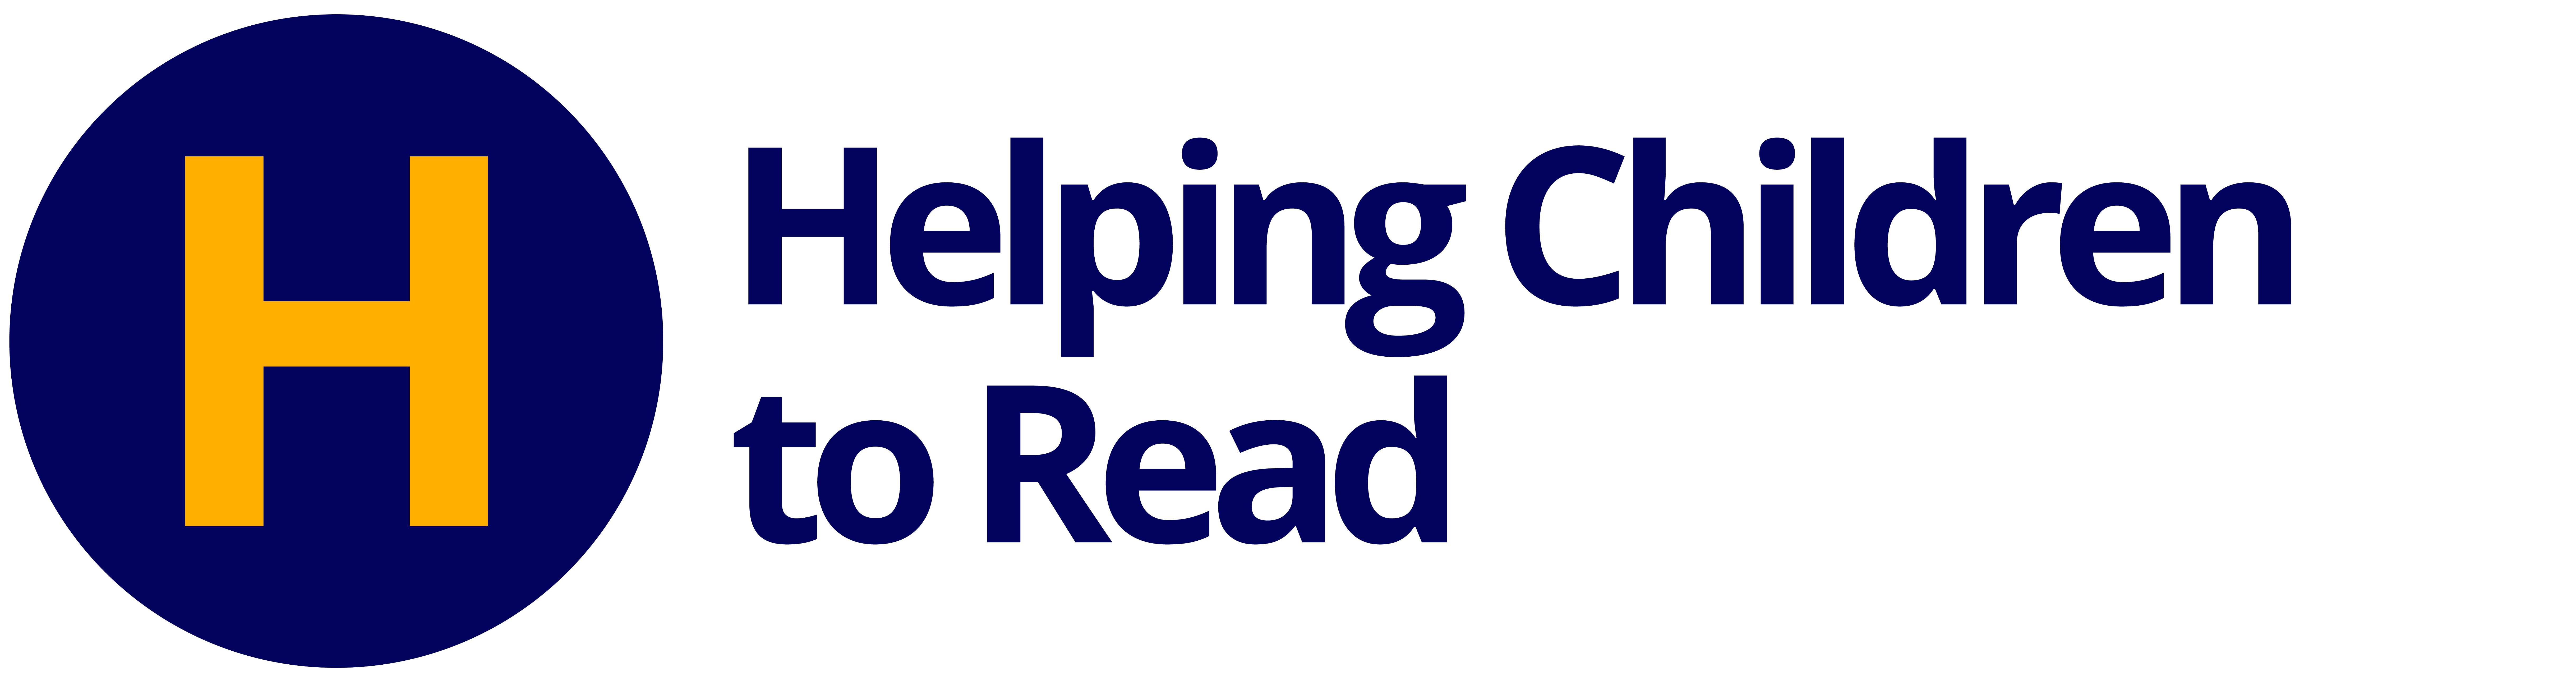 Helping Children to Read